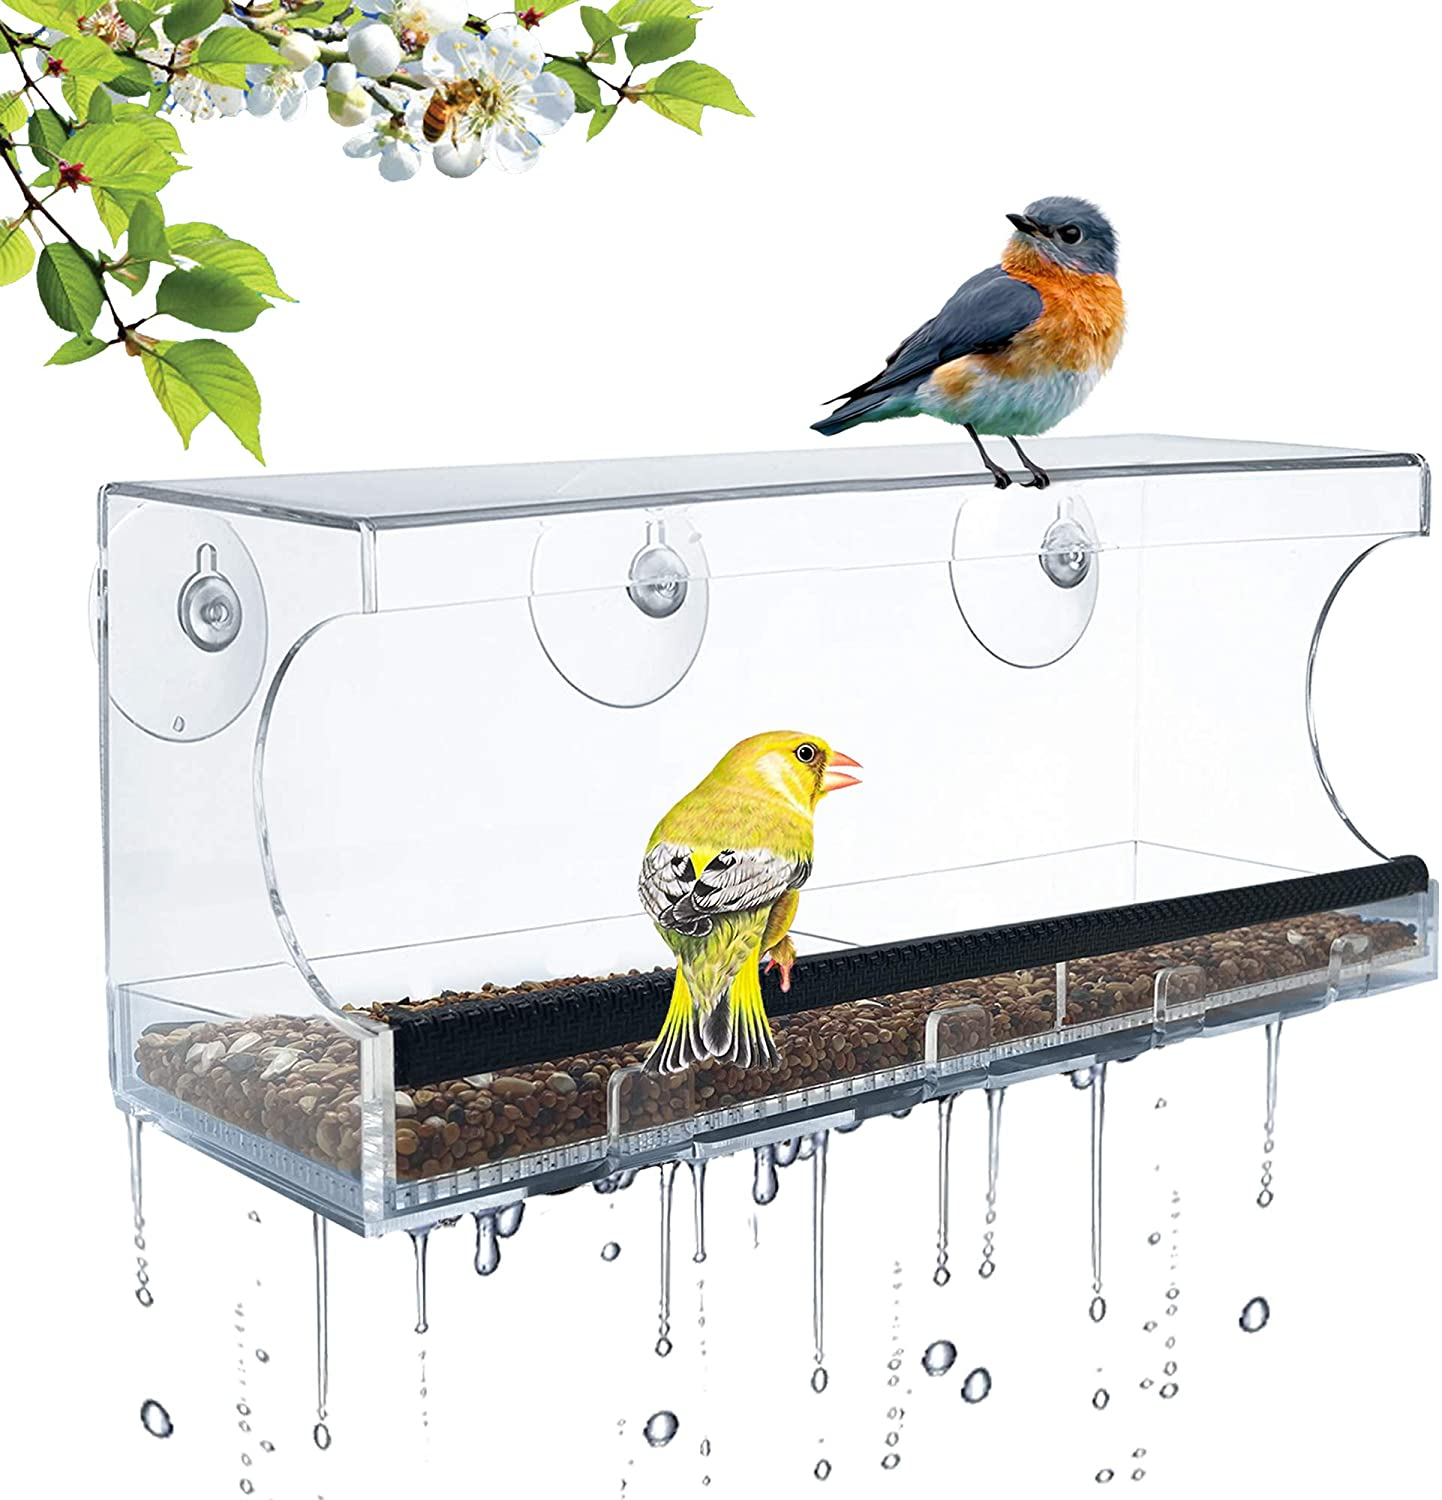 CREPRO Window Bird Feeder with Strong Suction Cups, Removable Seed Tray with Drainage Holes, Anti-Shock Anti-Pressure Very Strong, Wild Bird Watching Gifts for Up-Close, Indoor Bird Watching